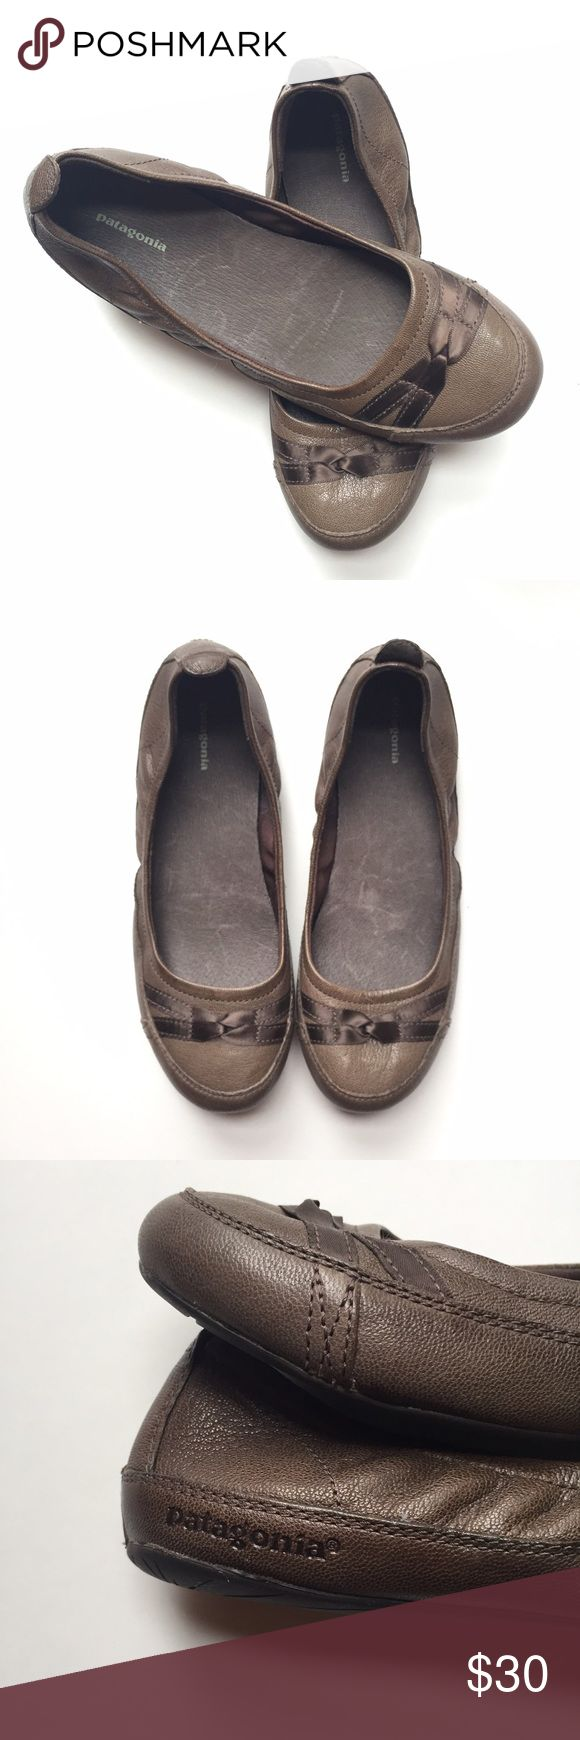 Patagonia Leather Flats Quality leather upper and rubber sole. Ribbon bow detail. Patagonia Shoes Flats & Loafers